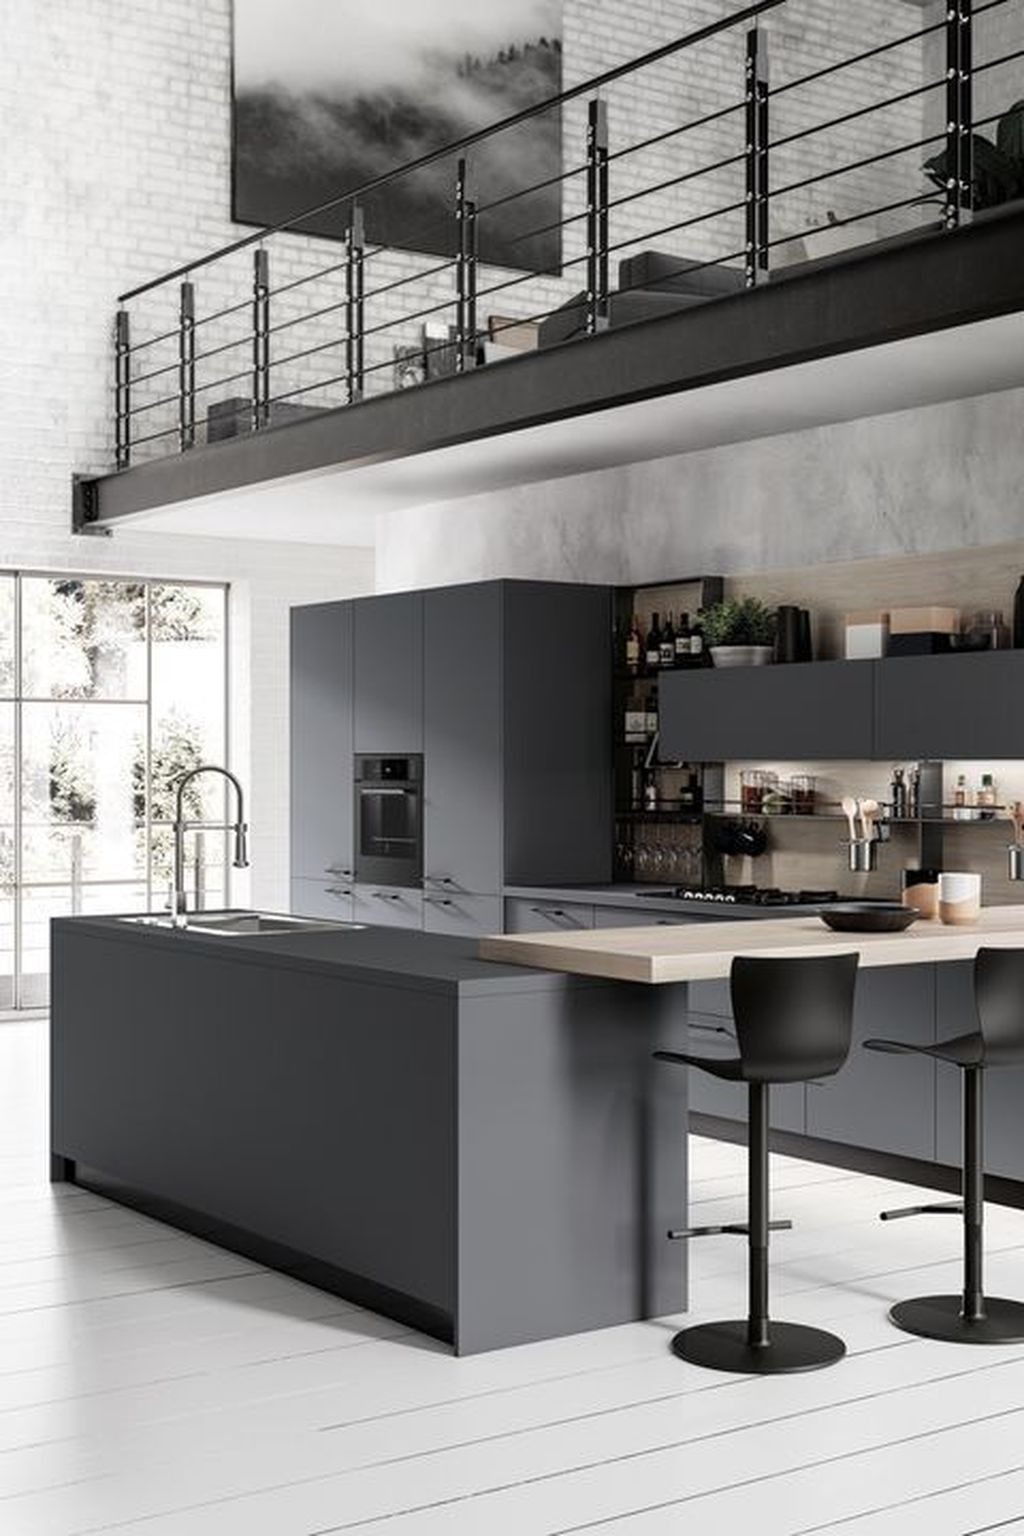 Best Monochrome Kitchen Theme Ideas For Decoration36